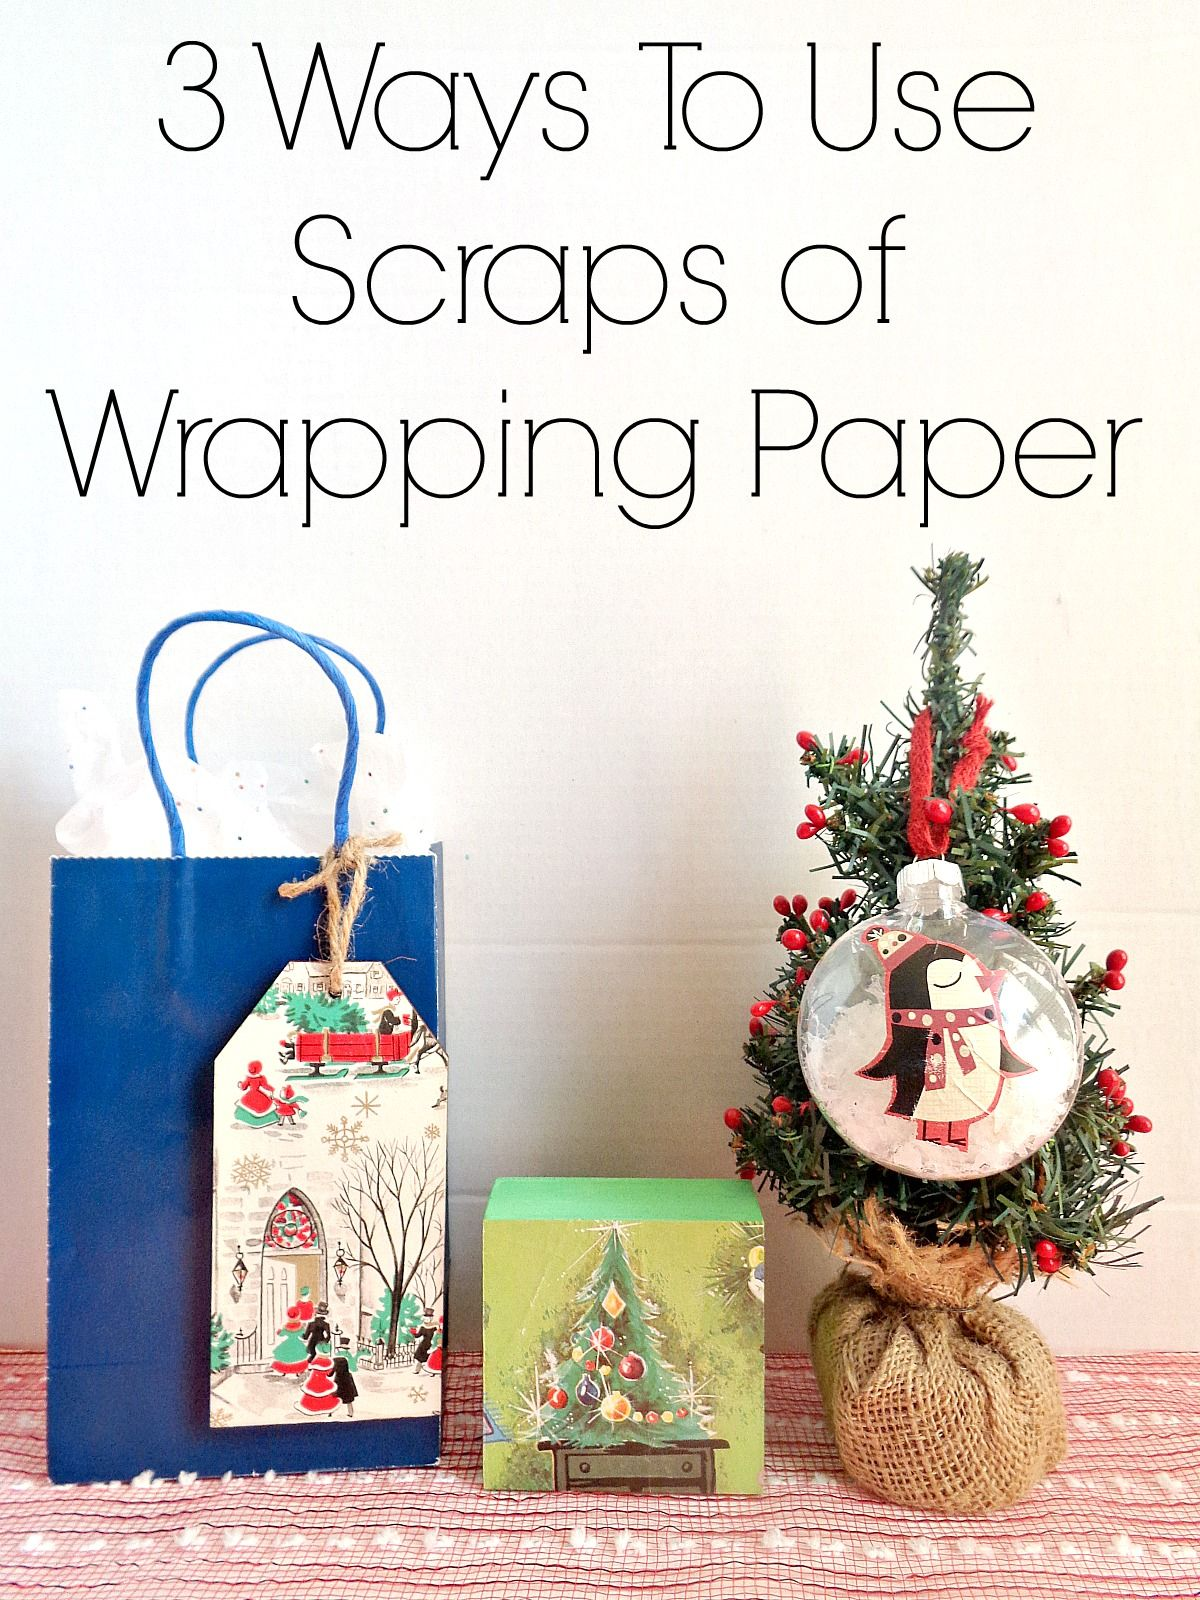 Ways To Use Scraps Of Wrapping Paper